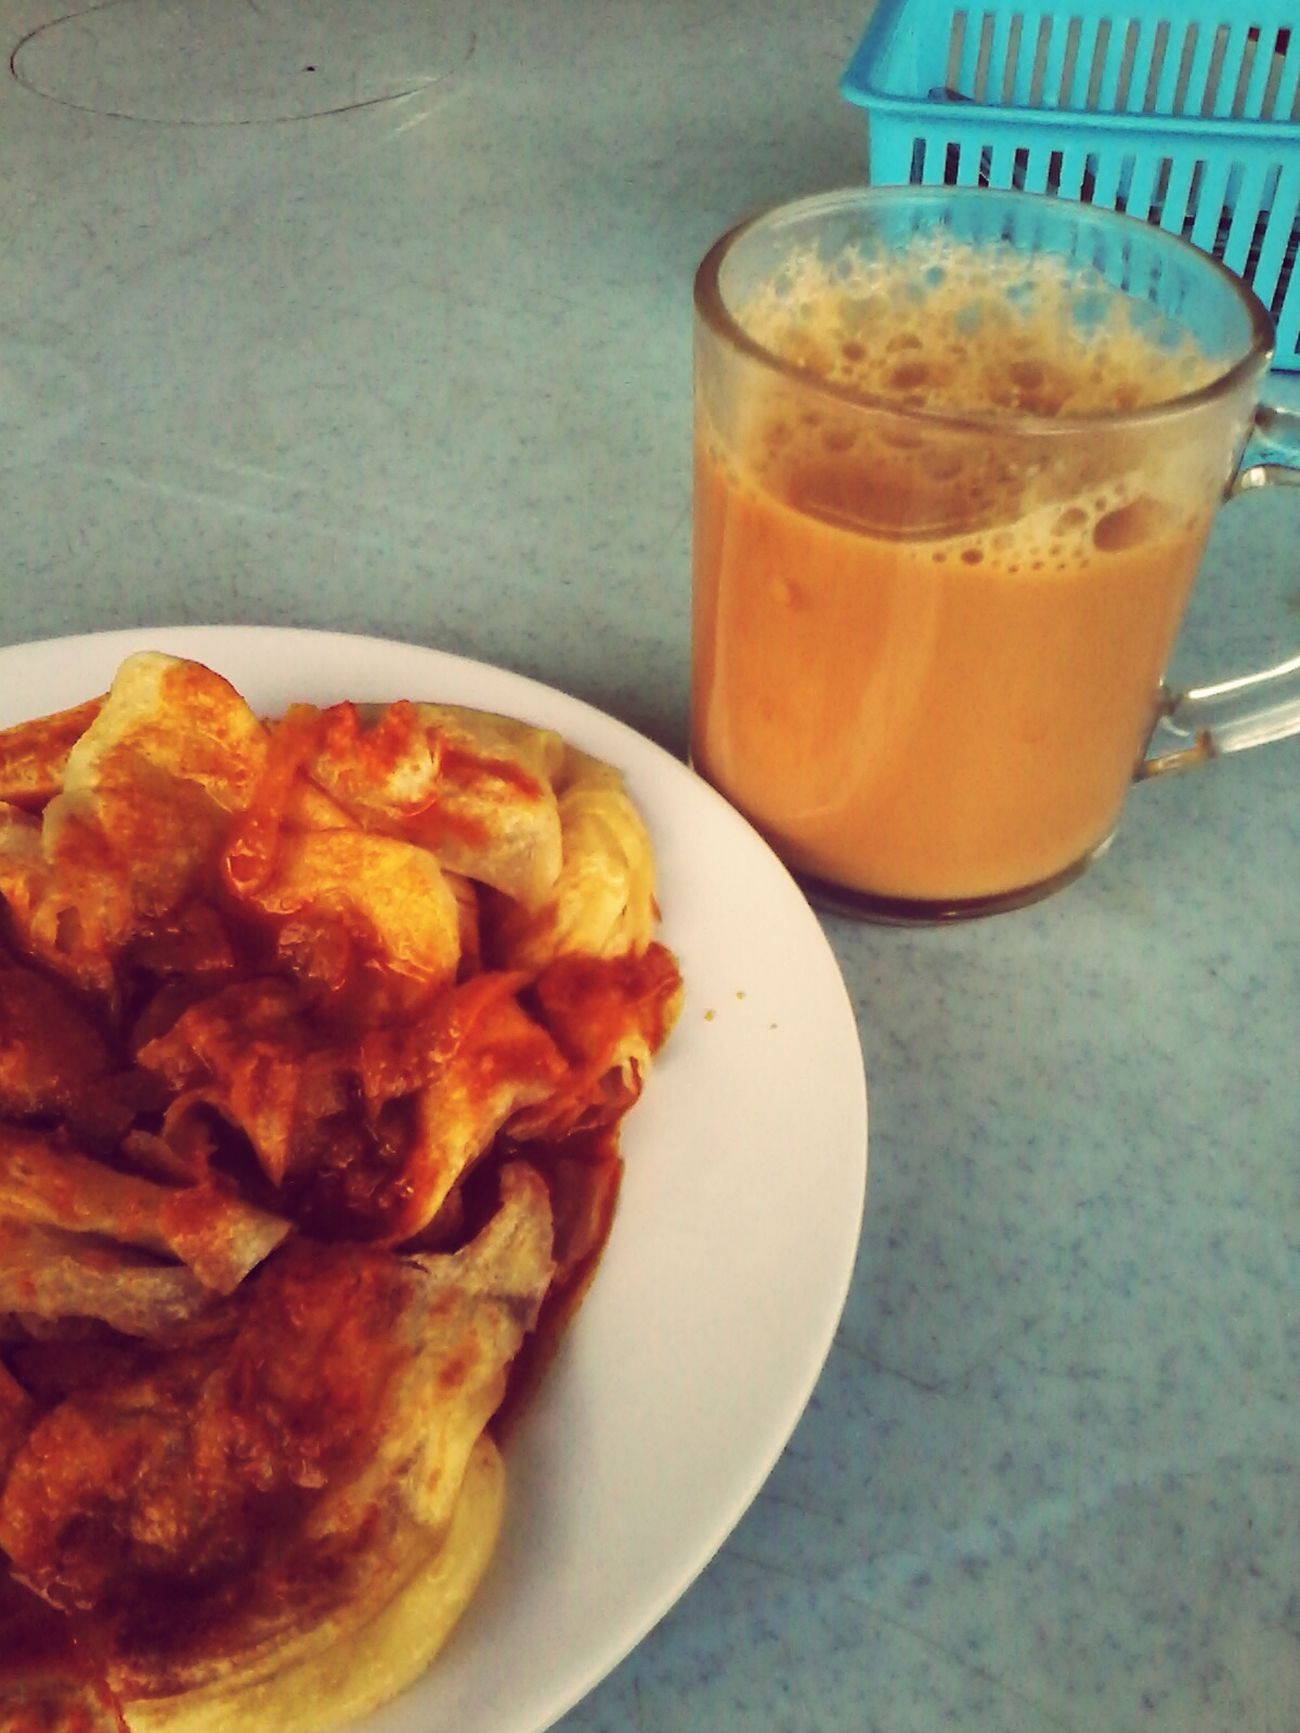 Malaysian culture..breakfast time Roticanai+tehtarik